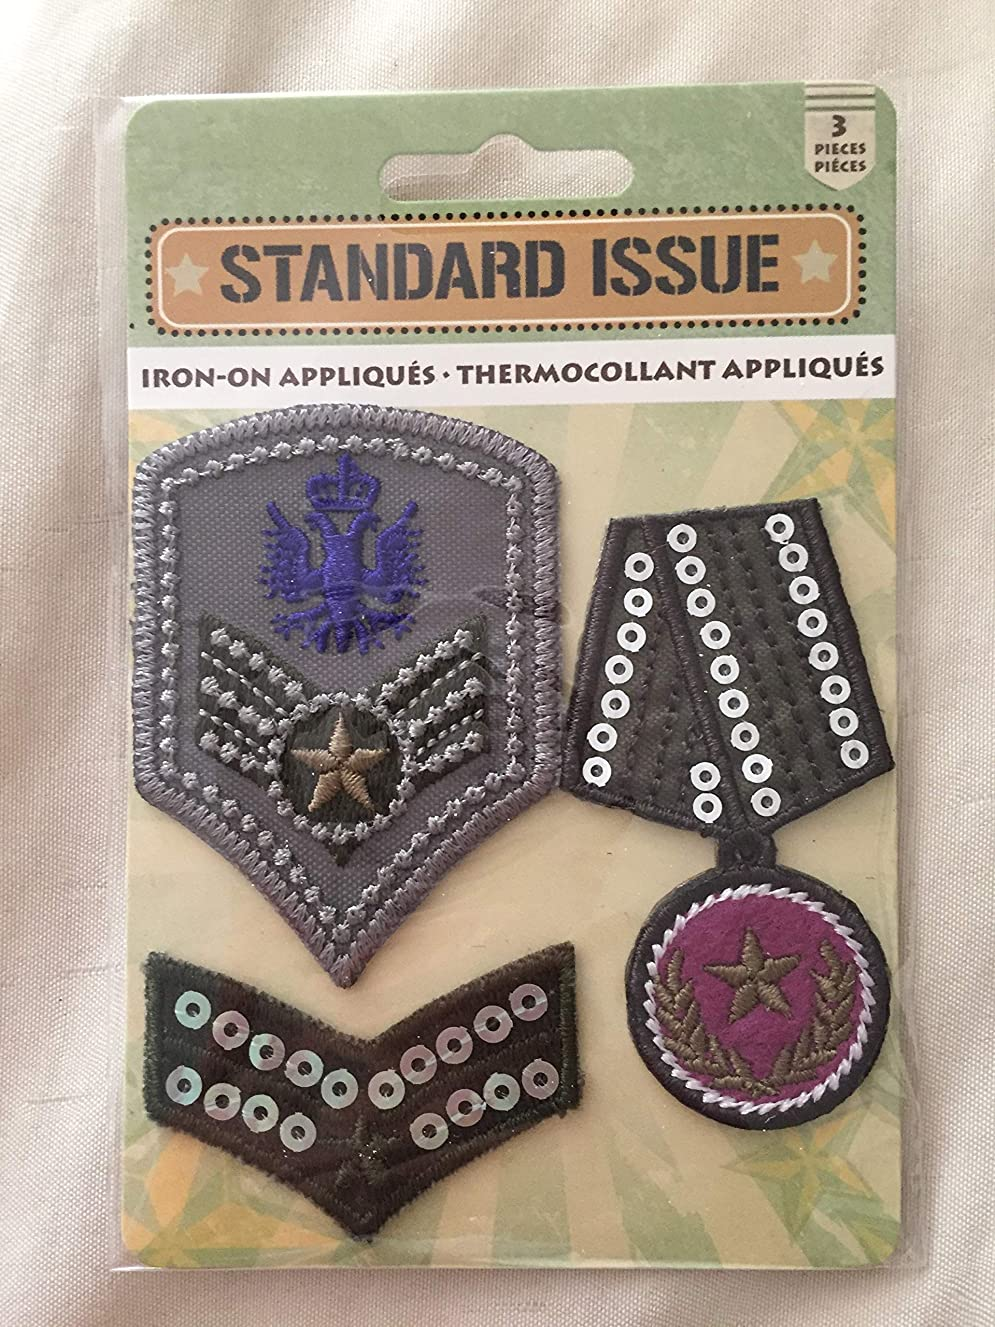 Standard Issue Iron-On Appliques